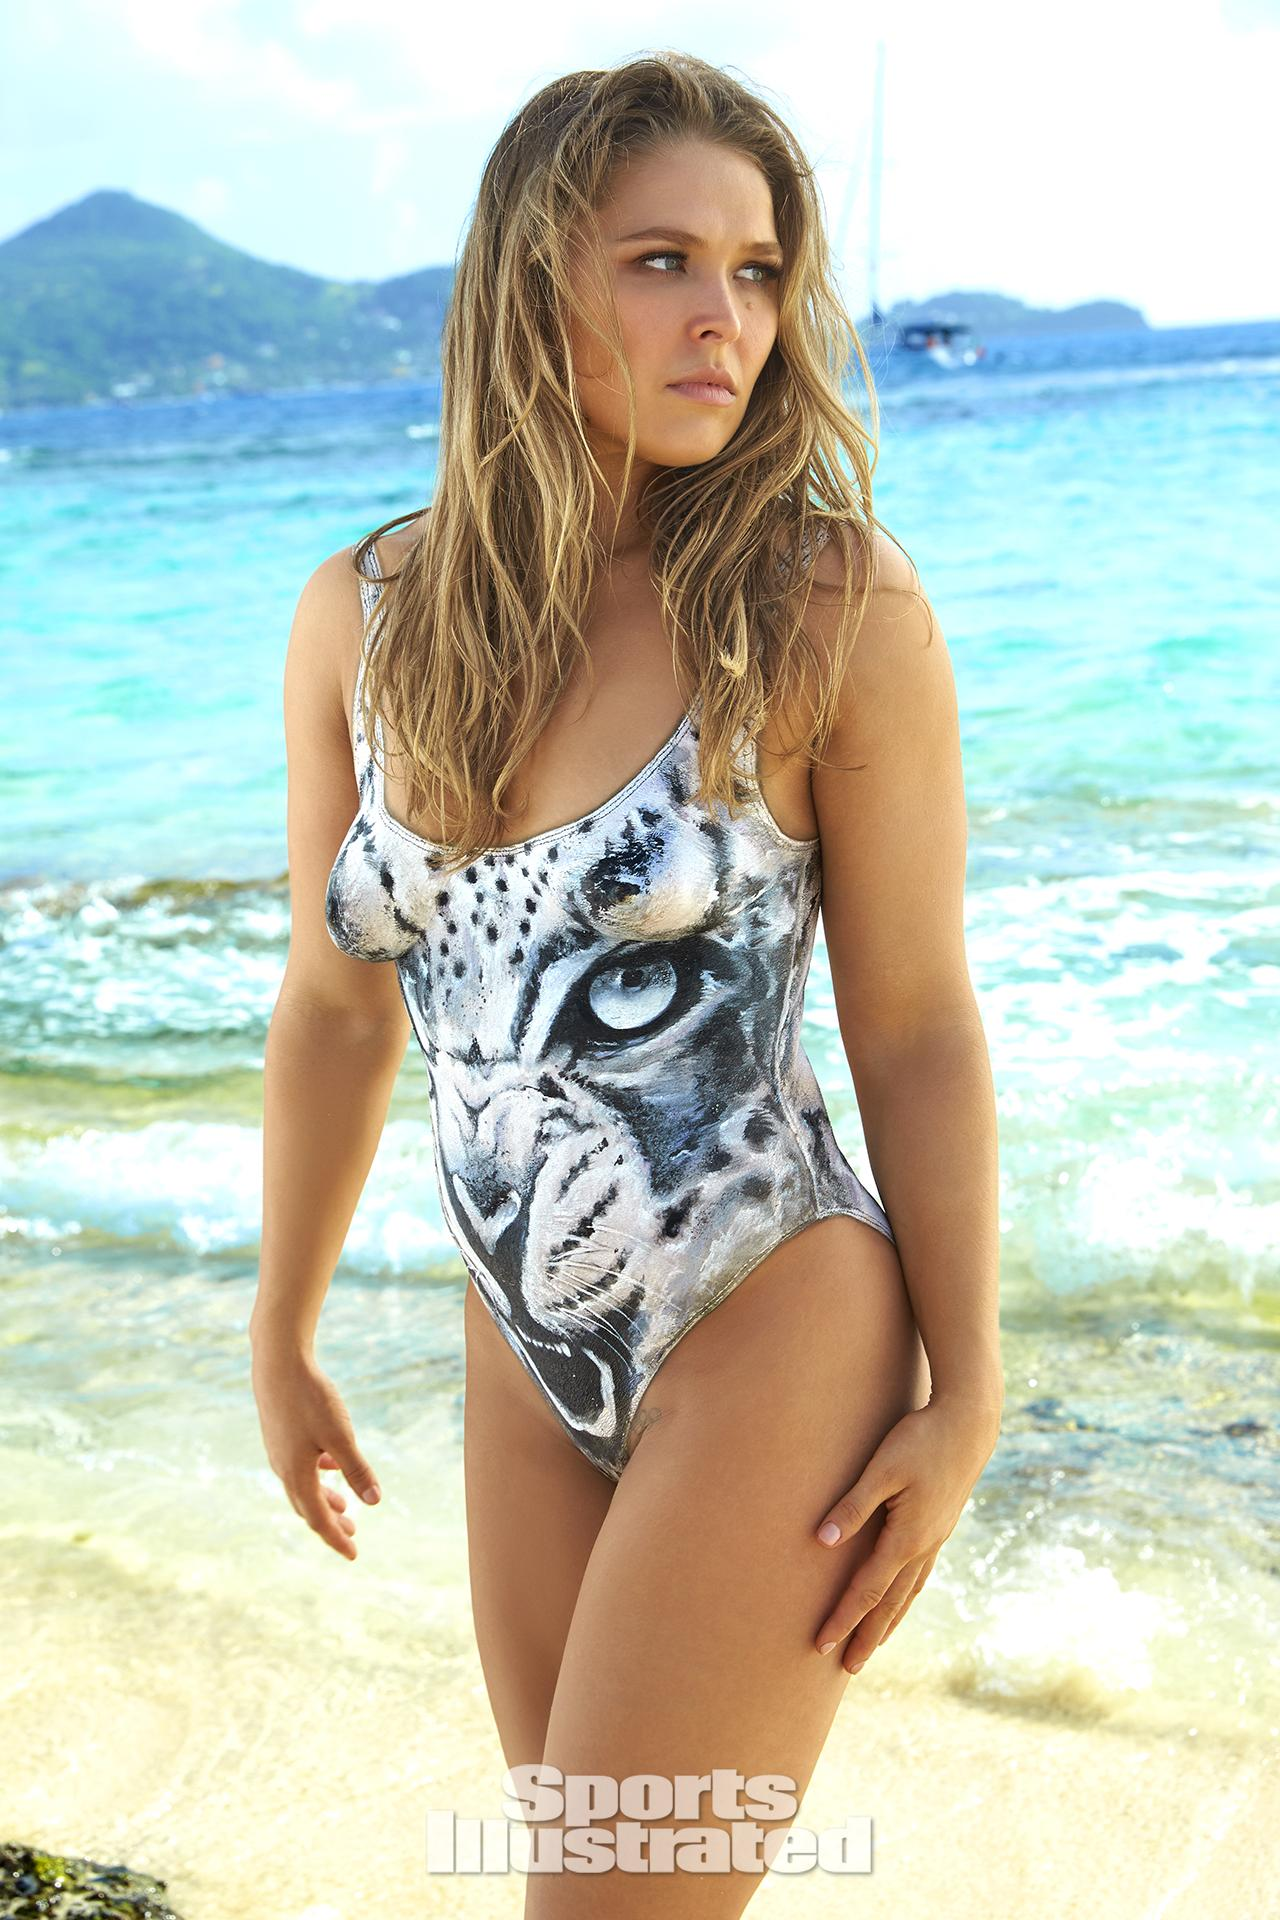 RONDA ROUSEY MMA Black Belt Magazine 5/12 HOTTEST FEMALE FIGHTER